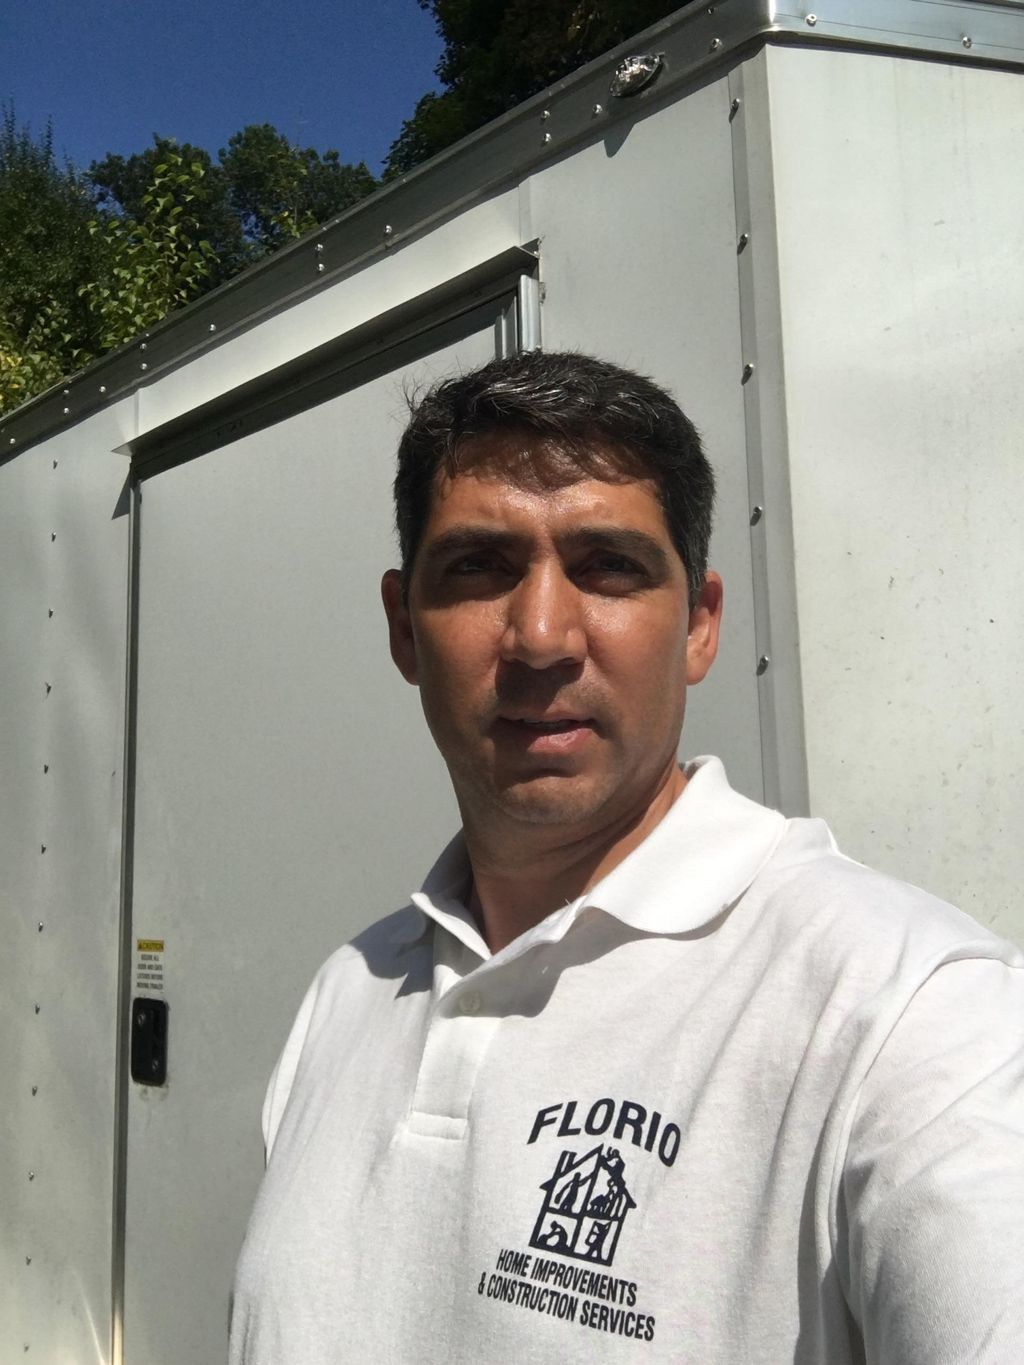 Florio Home Improvements and Construction Services